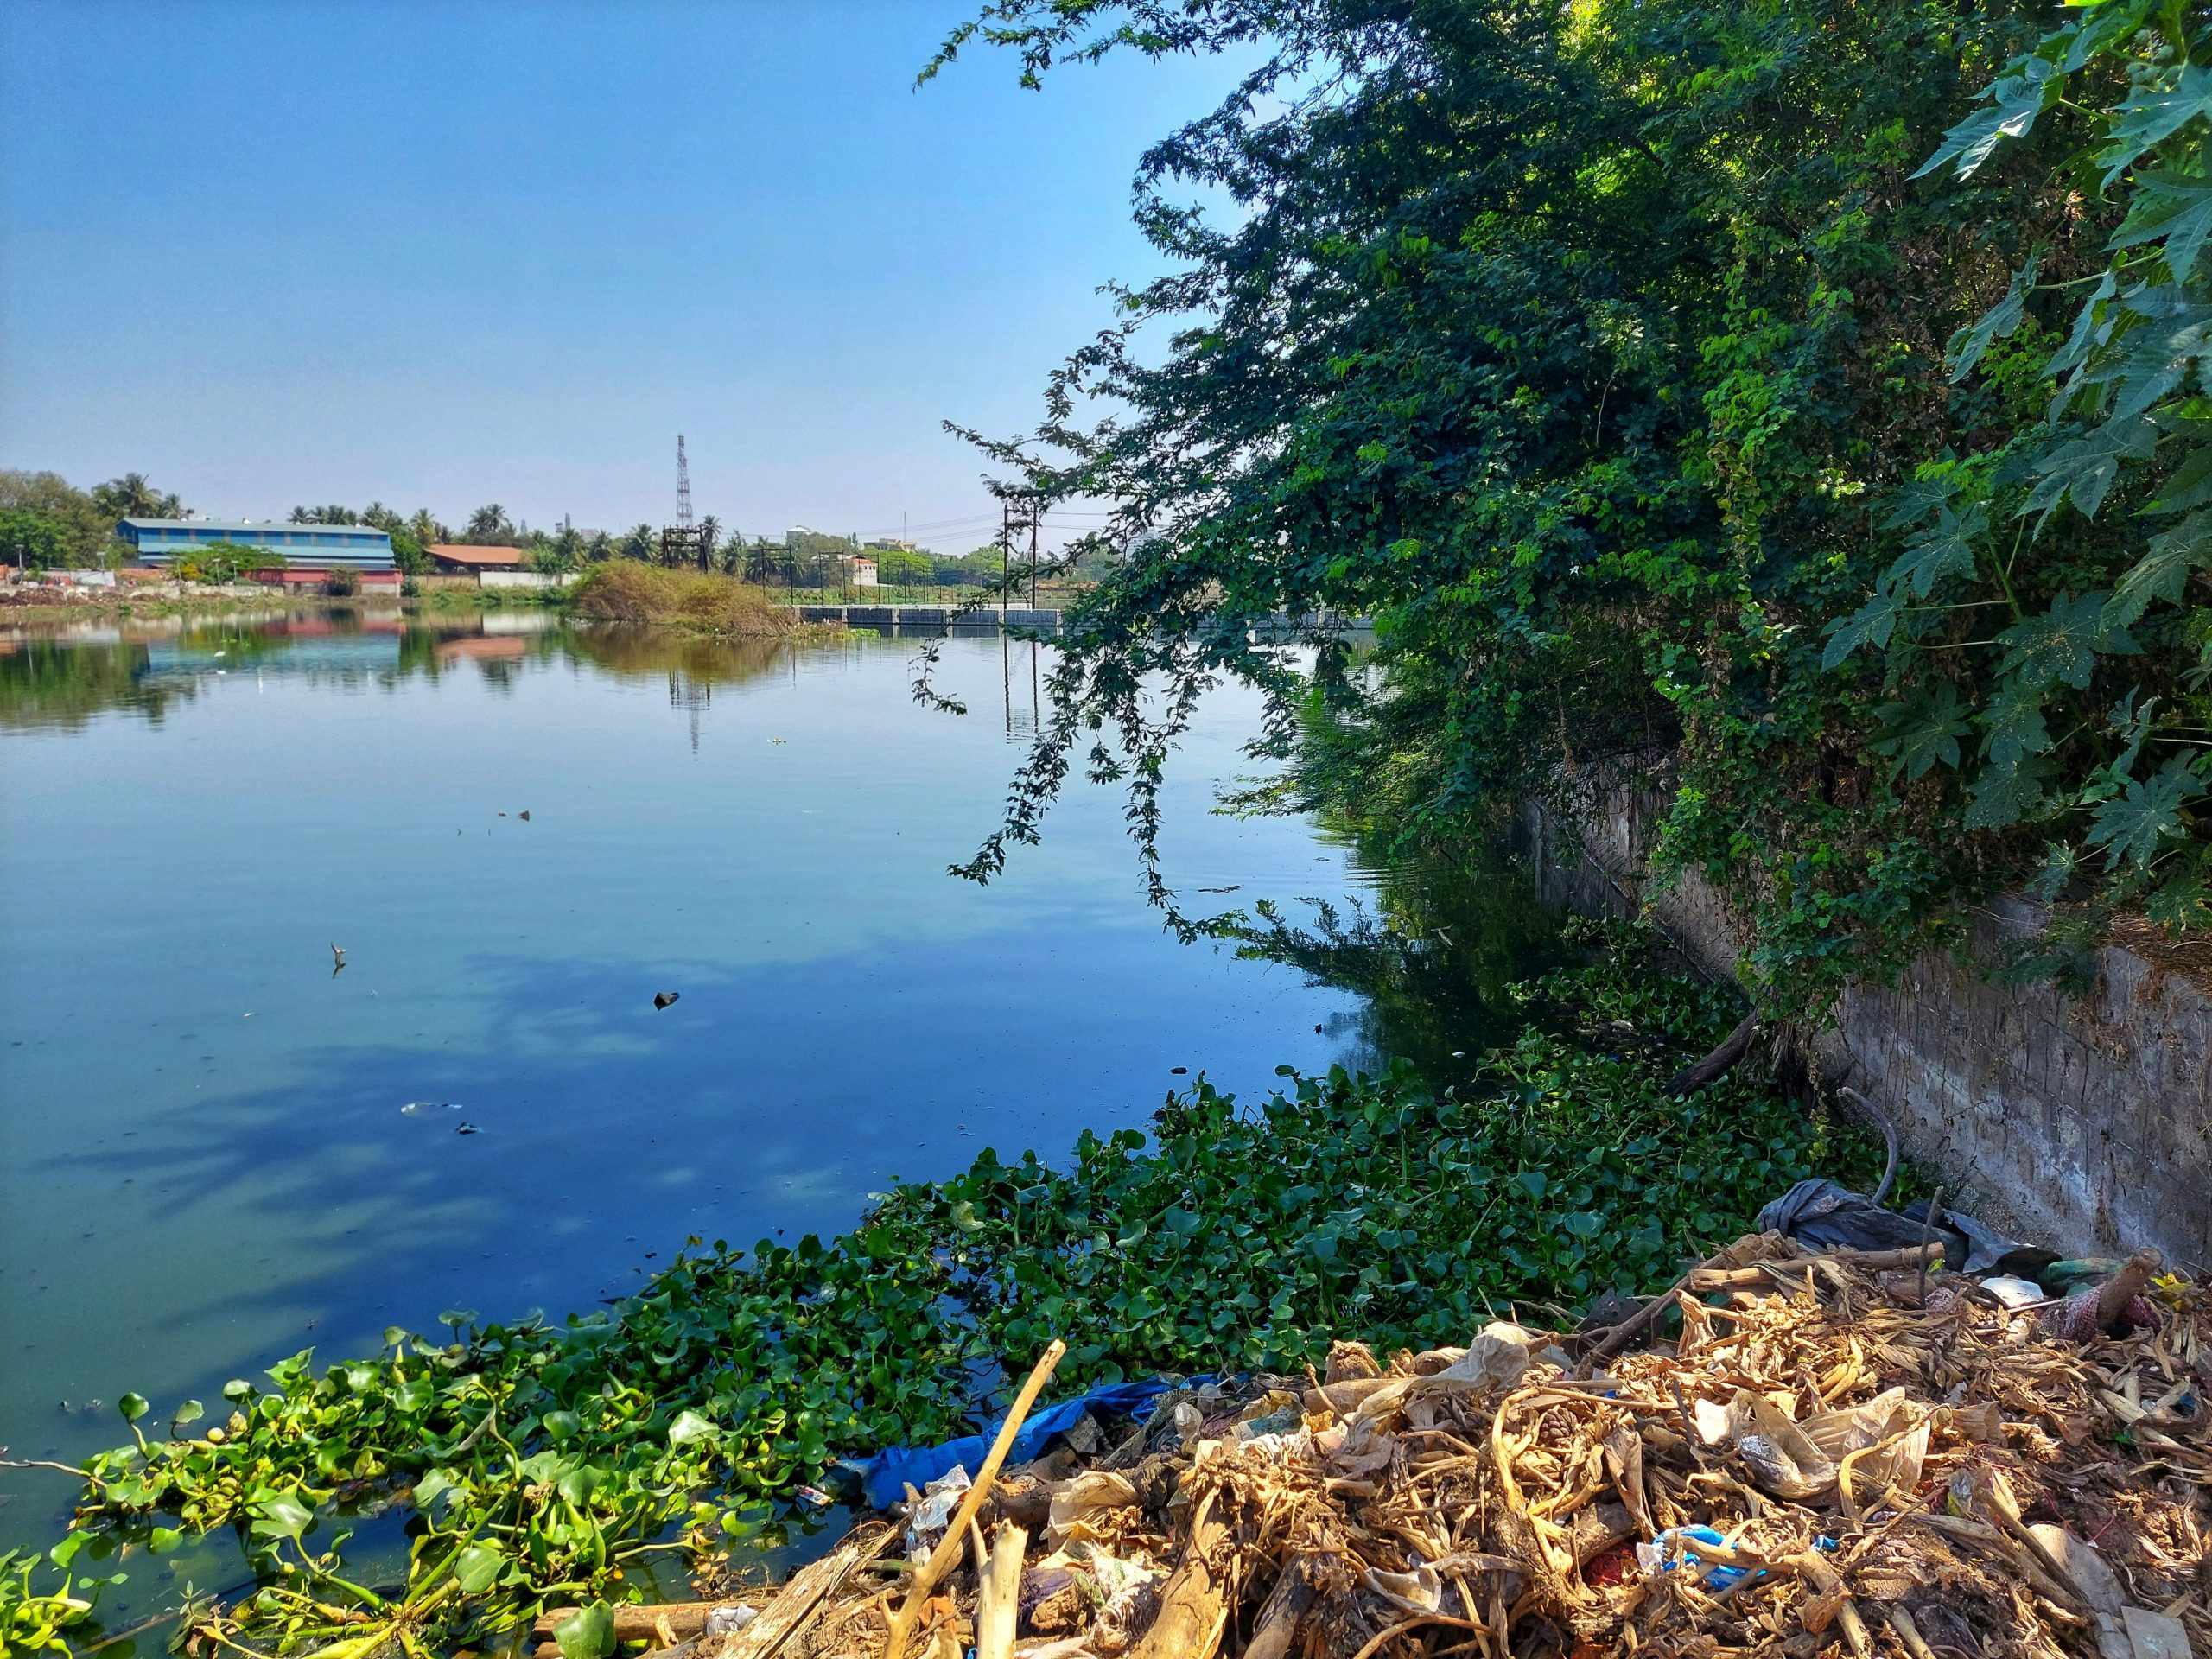 Water pollution due to waste dumps and water plants